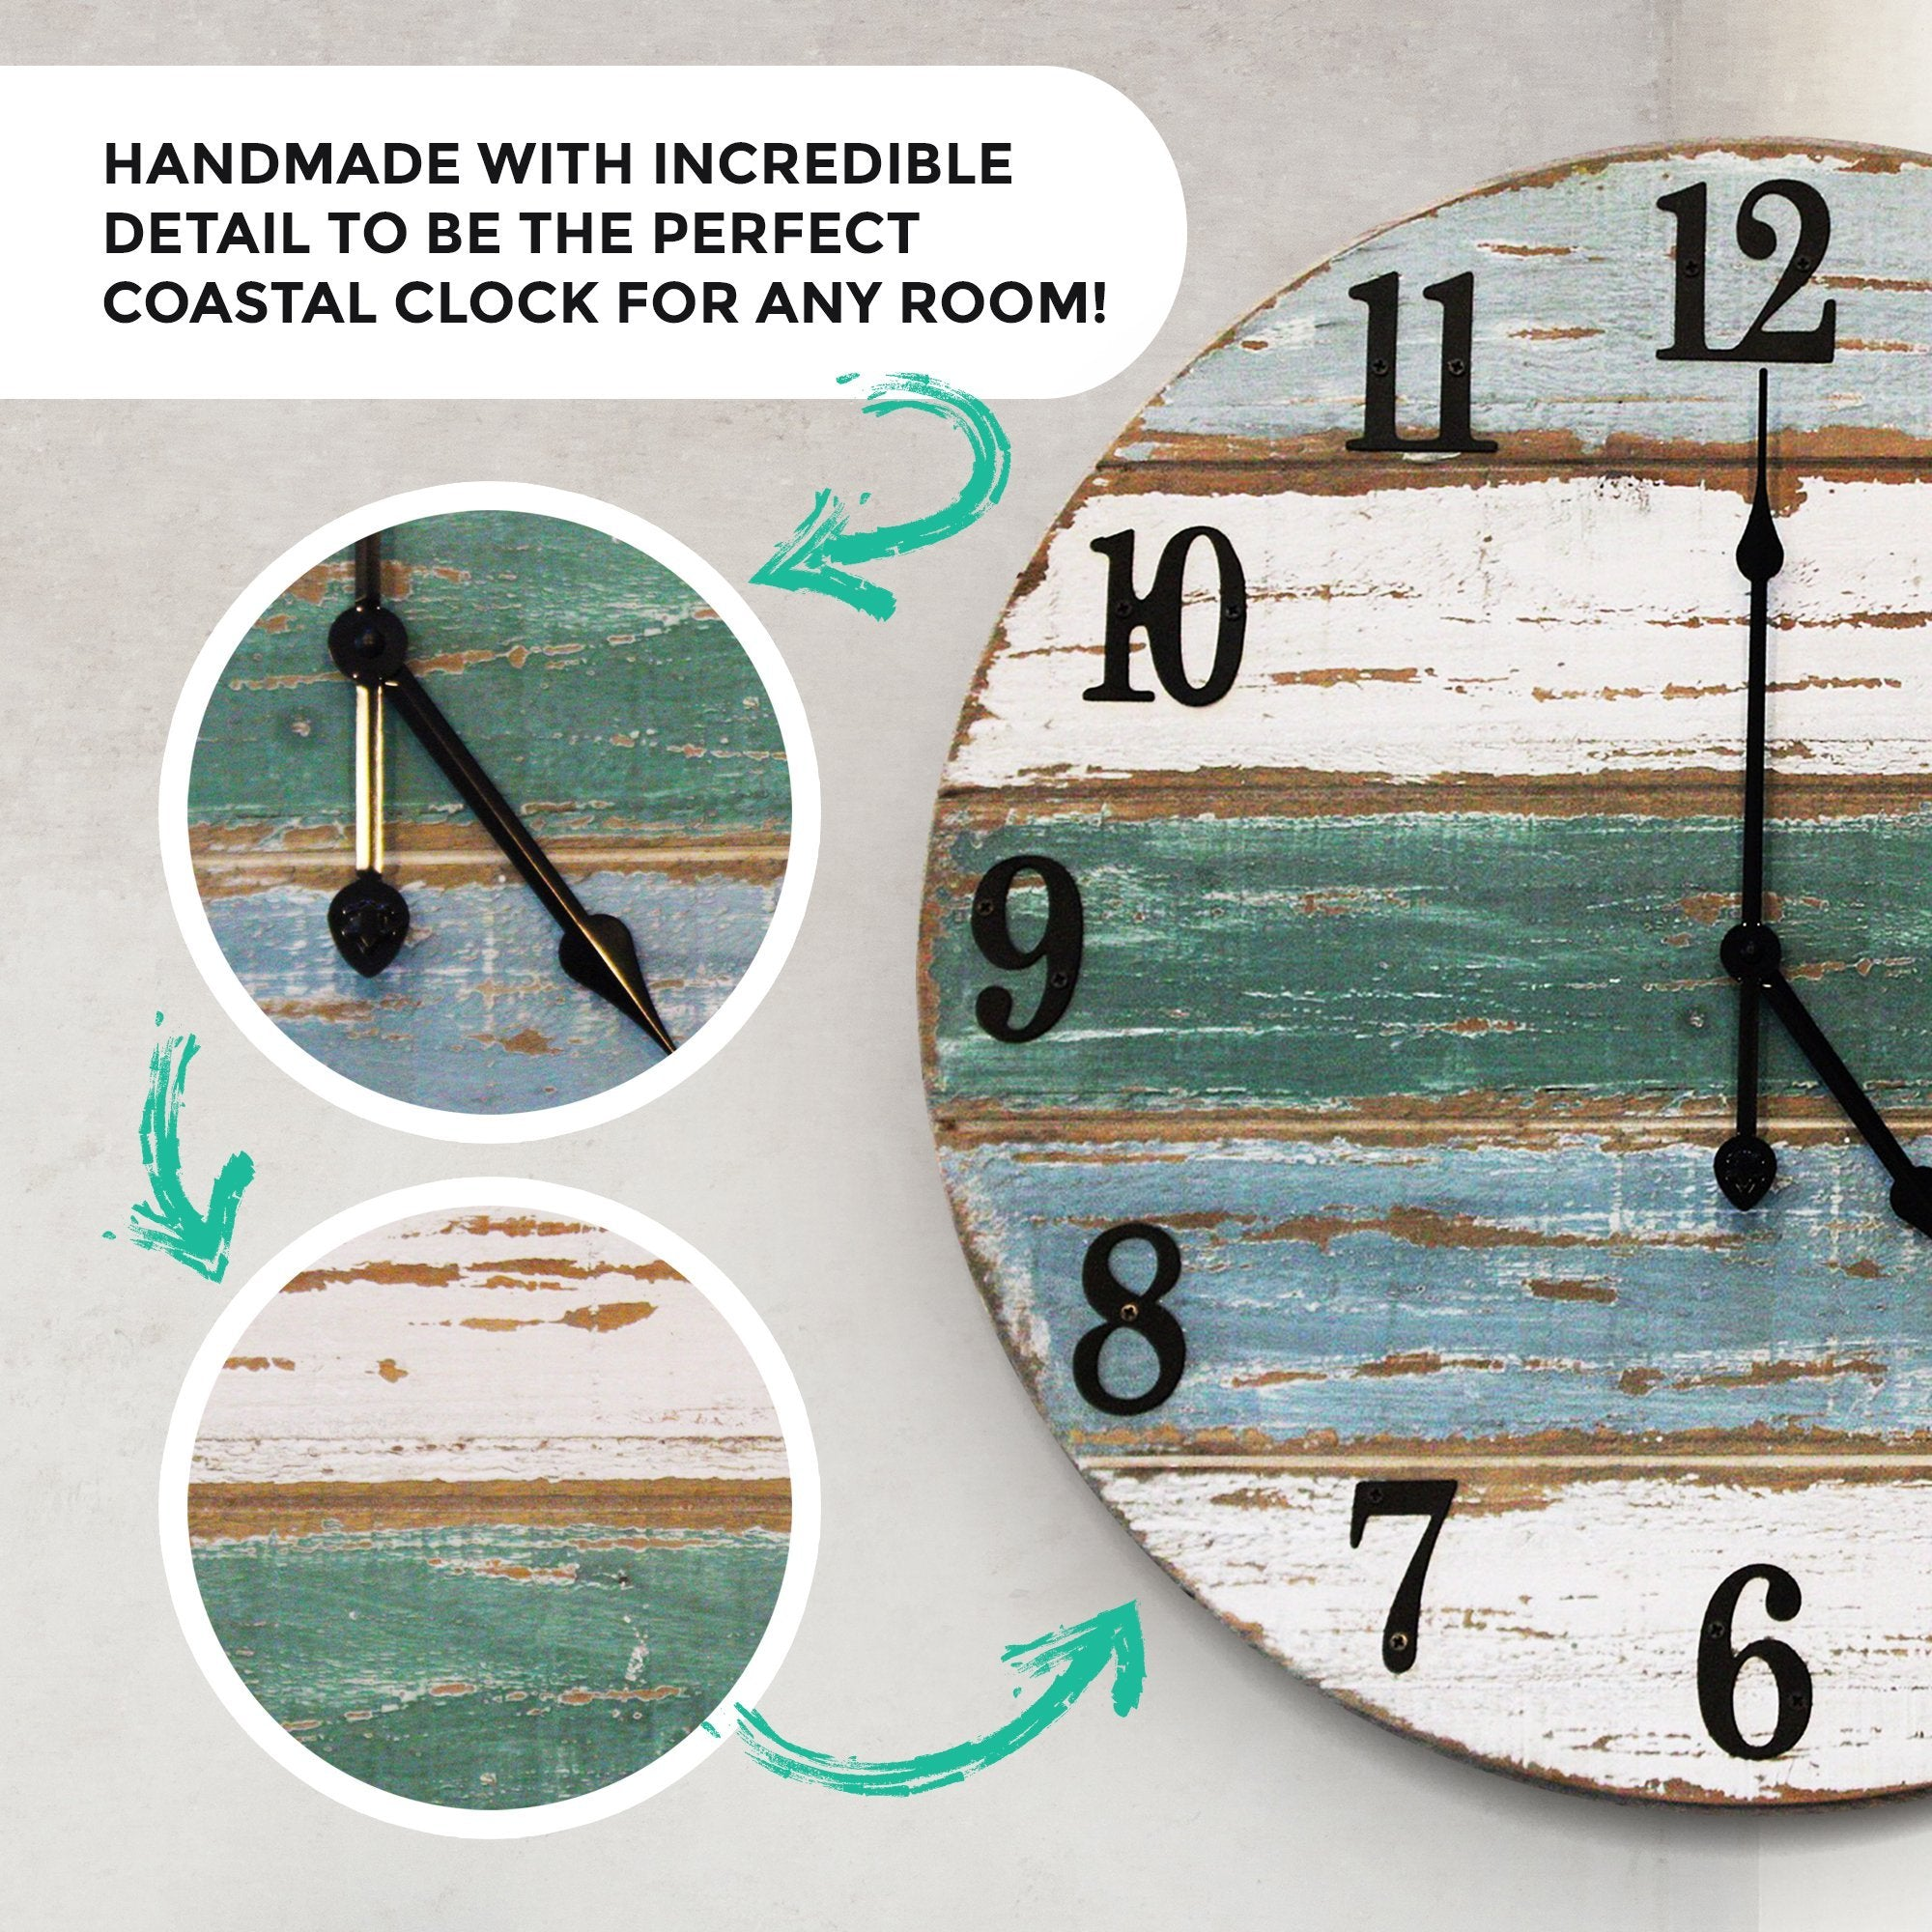 18 inch beach wall clock detail callout